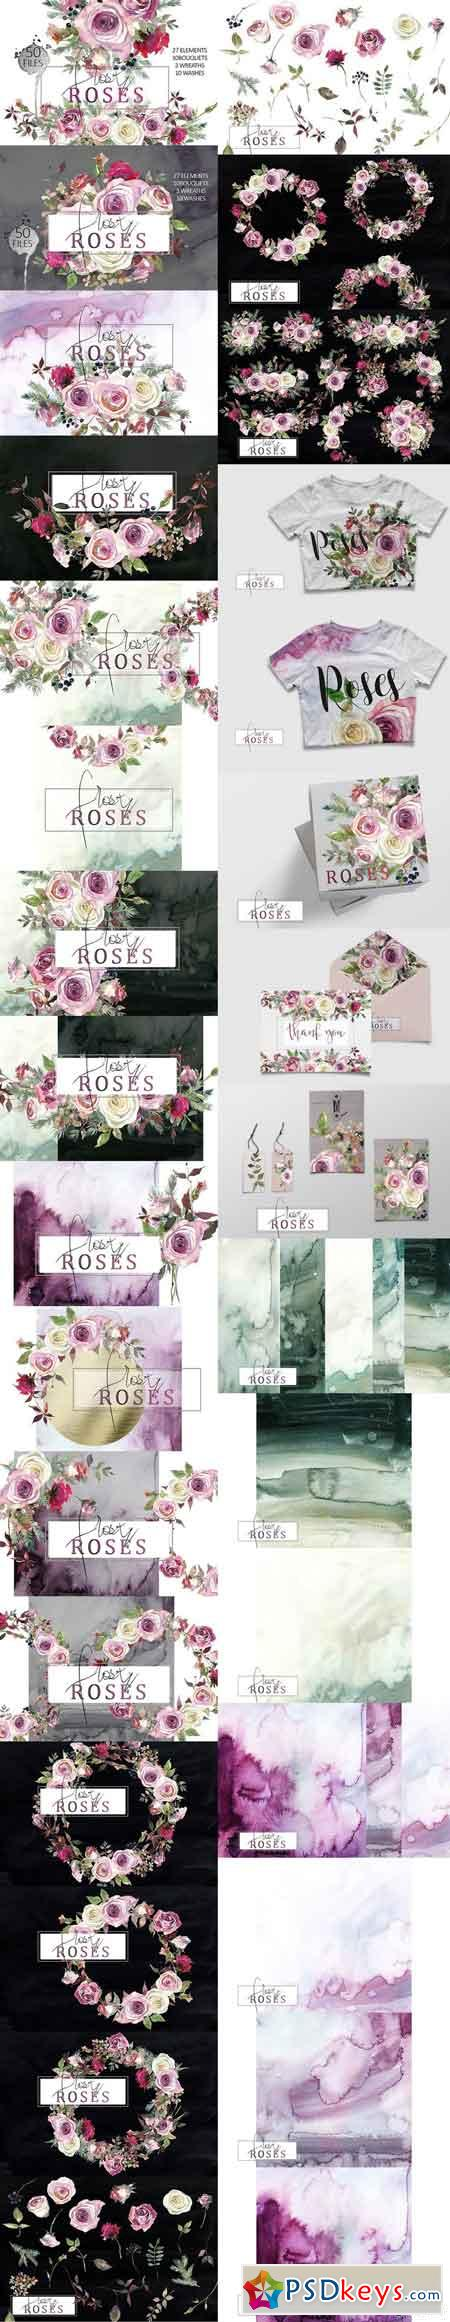 Frosty Roses Watercolor Flowers Set 1020956